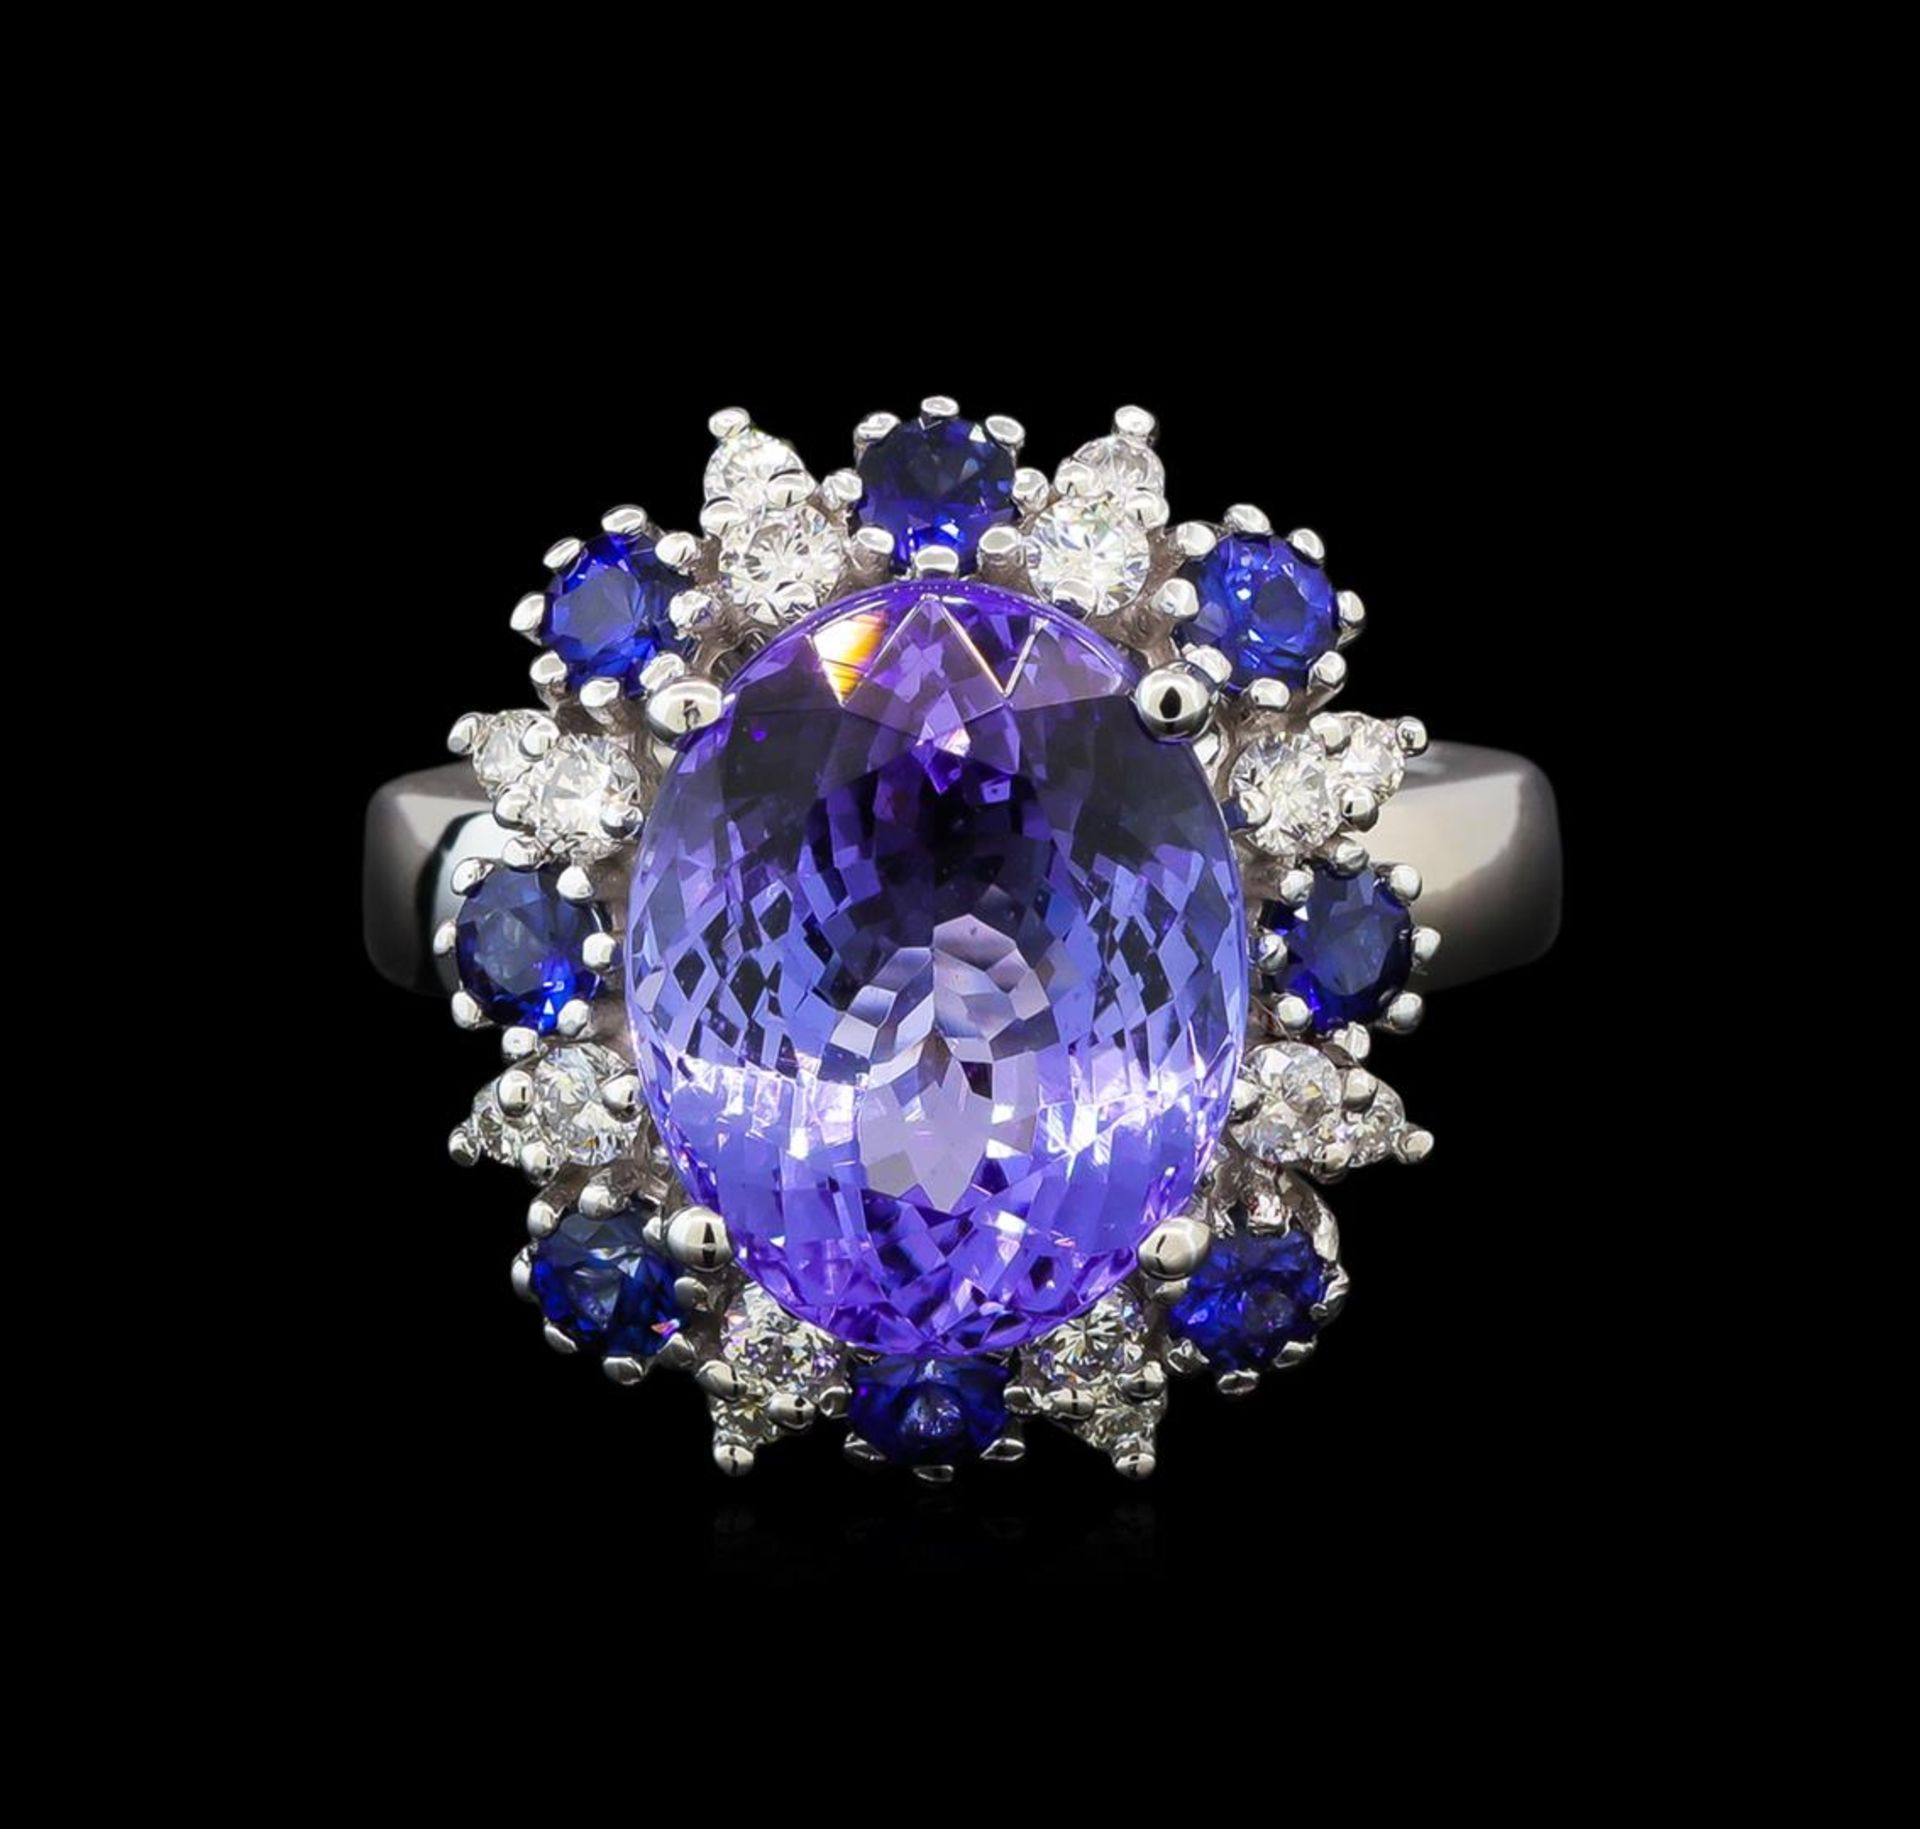 14KT White Gold 6.56 ctw Tanzanite, Sapphire and Diamond Ring - Image 2 of 5